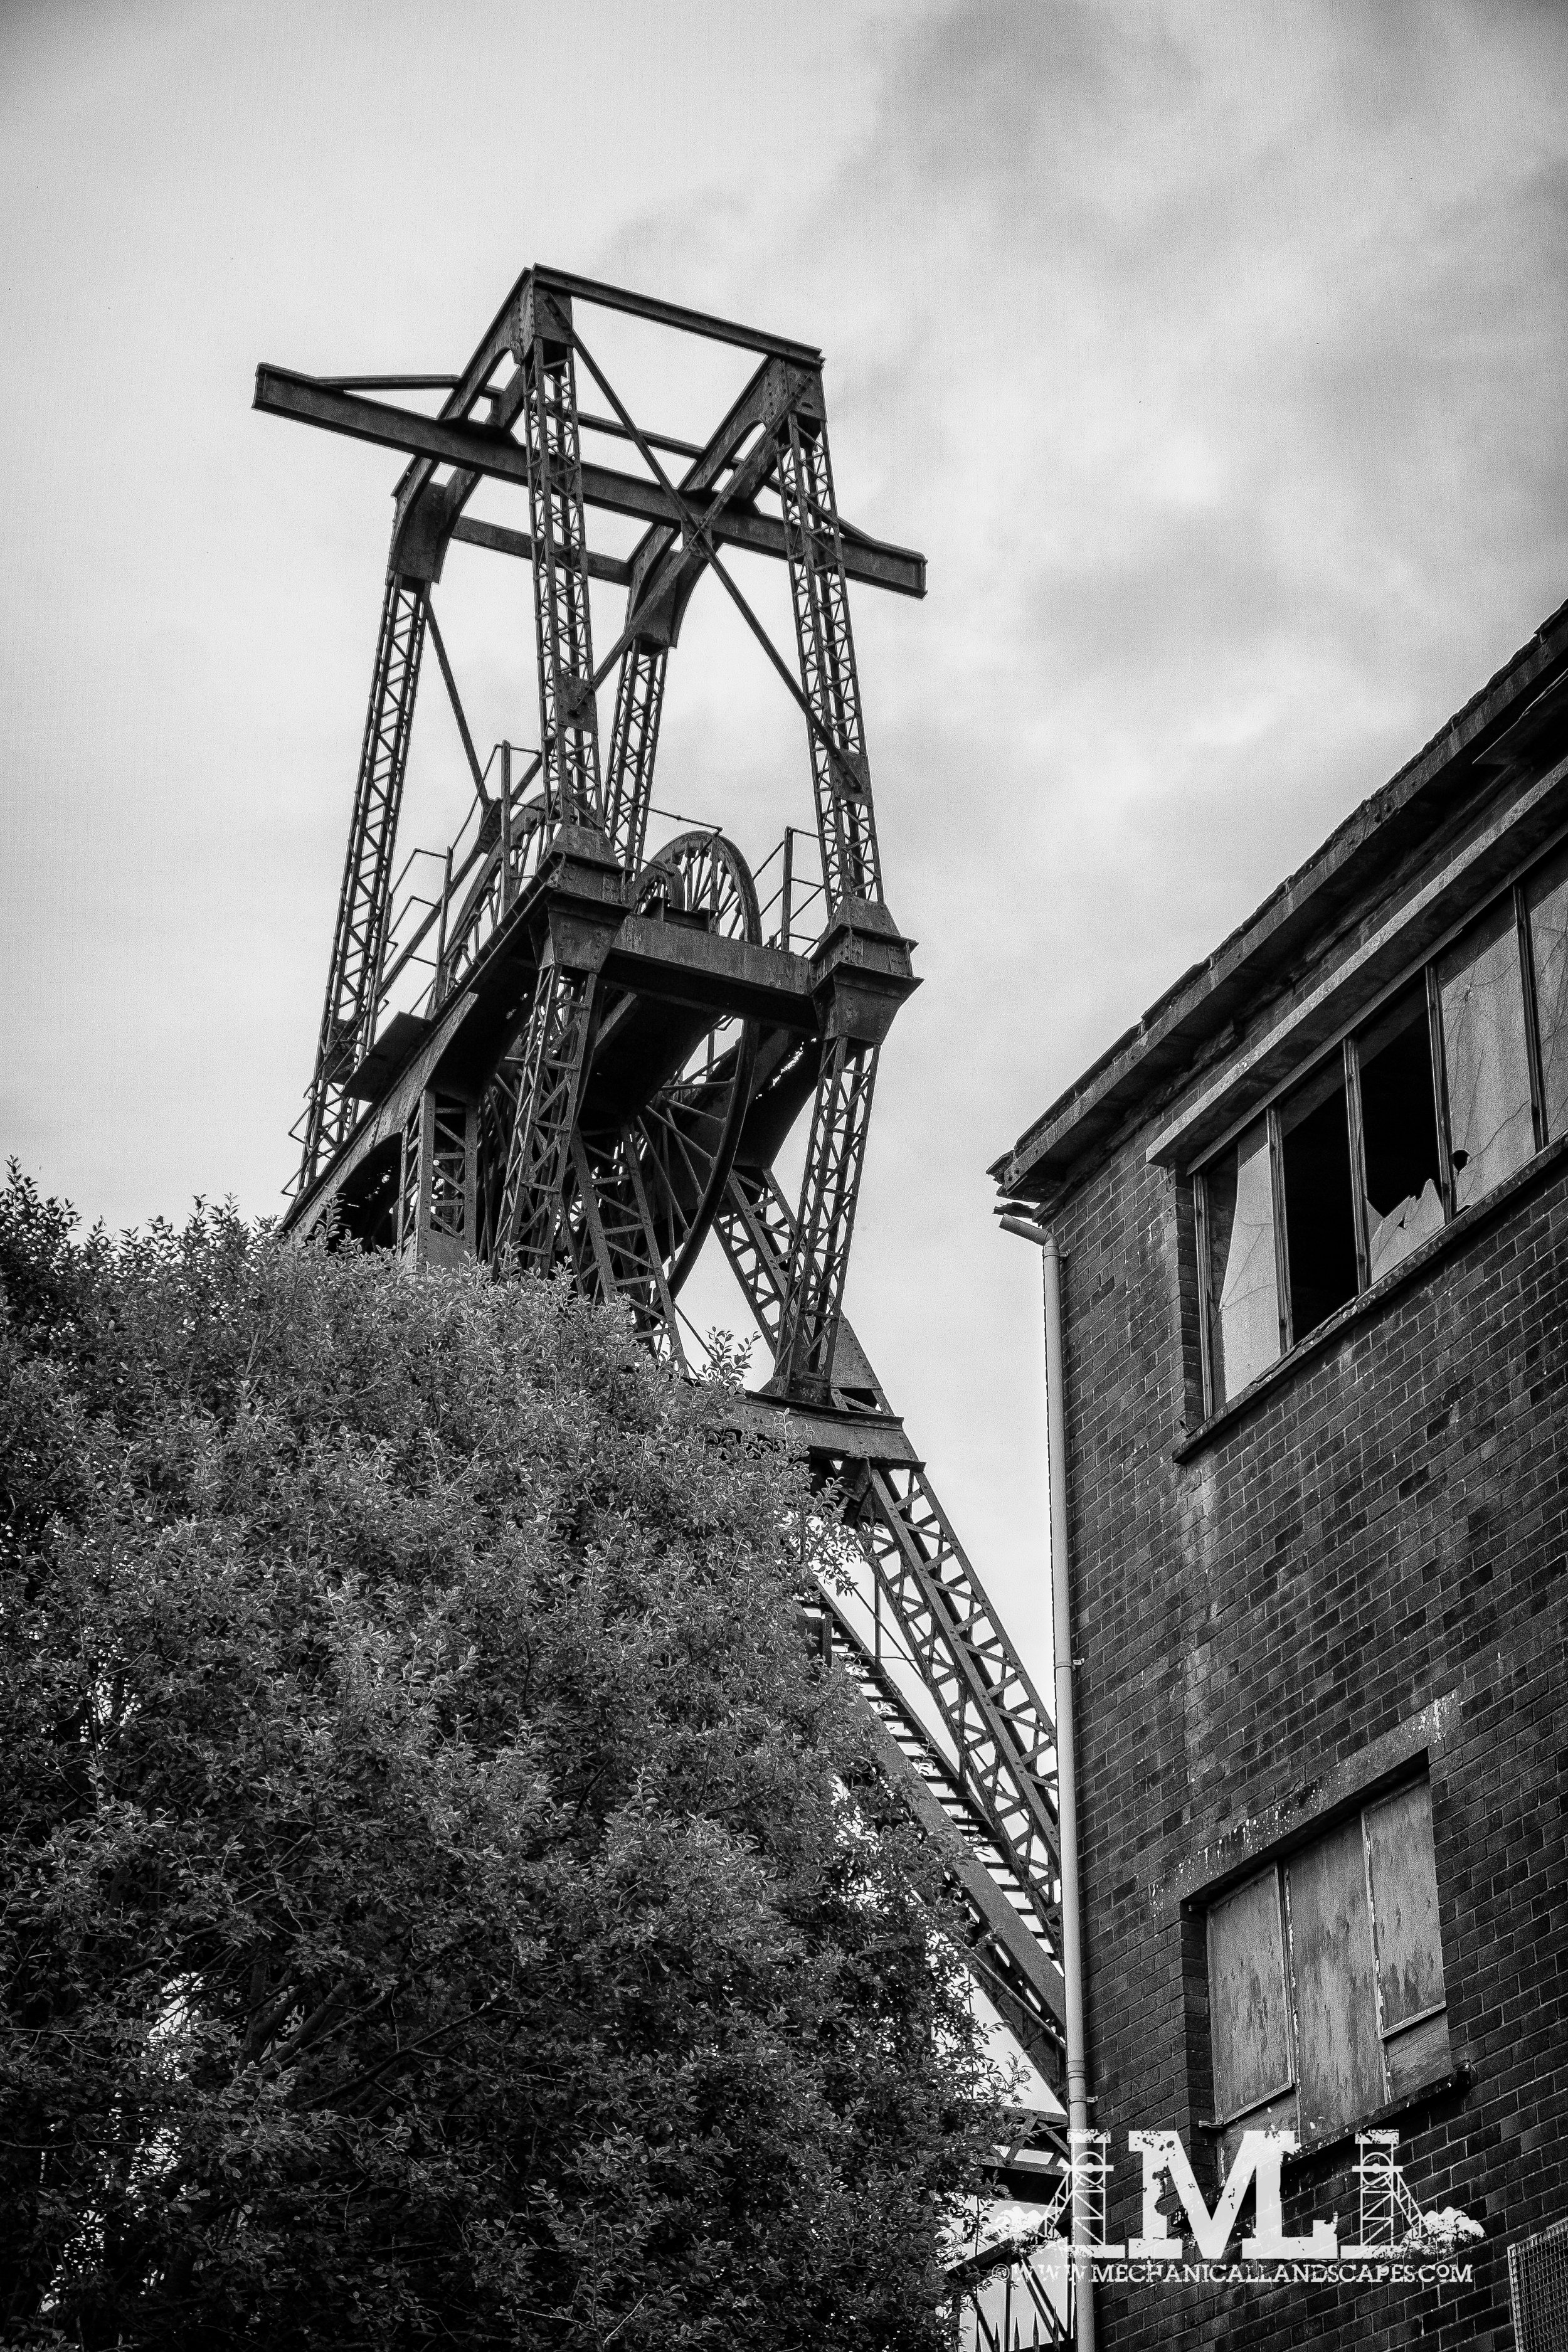 Chatterley Whitfield Colliery, Stoke